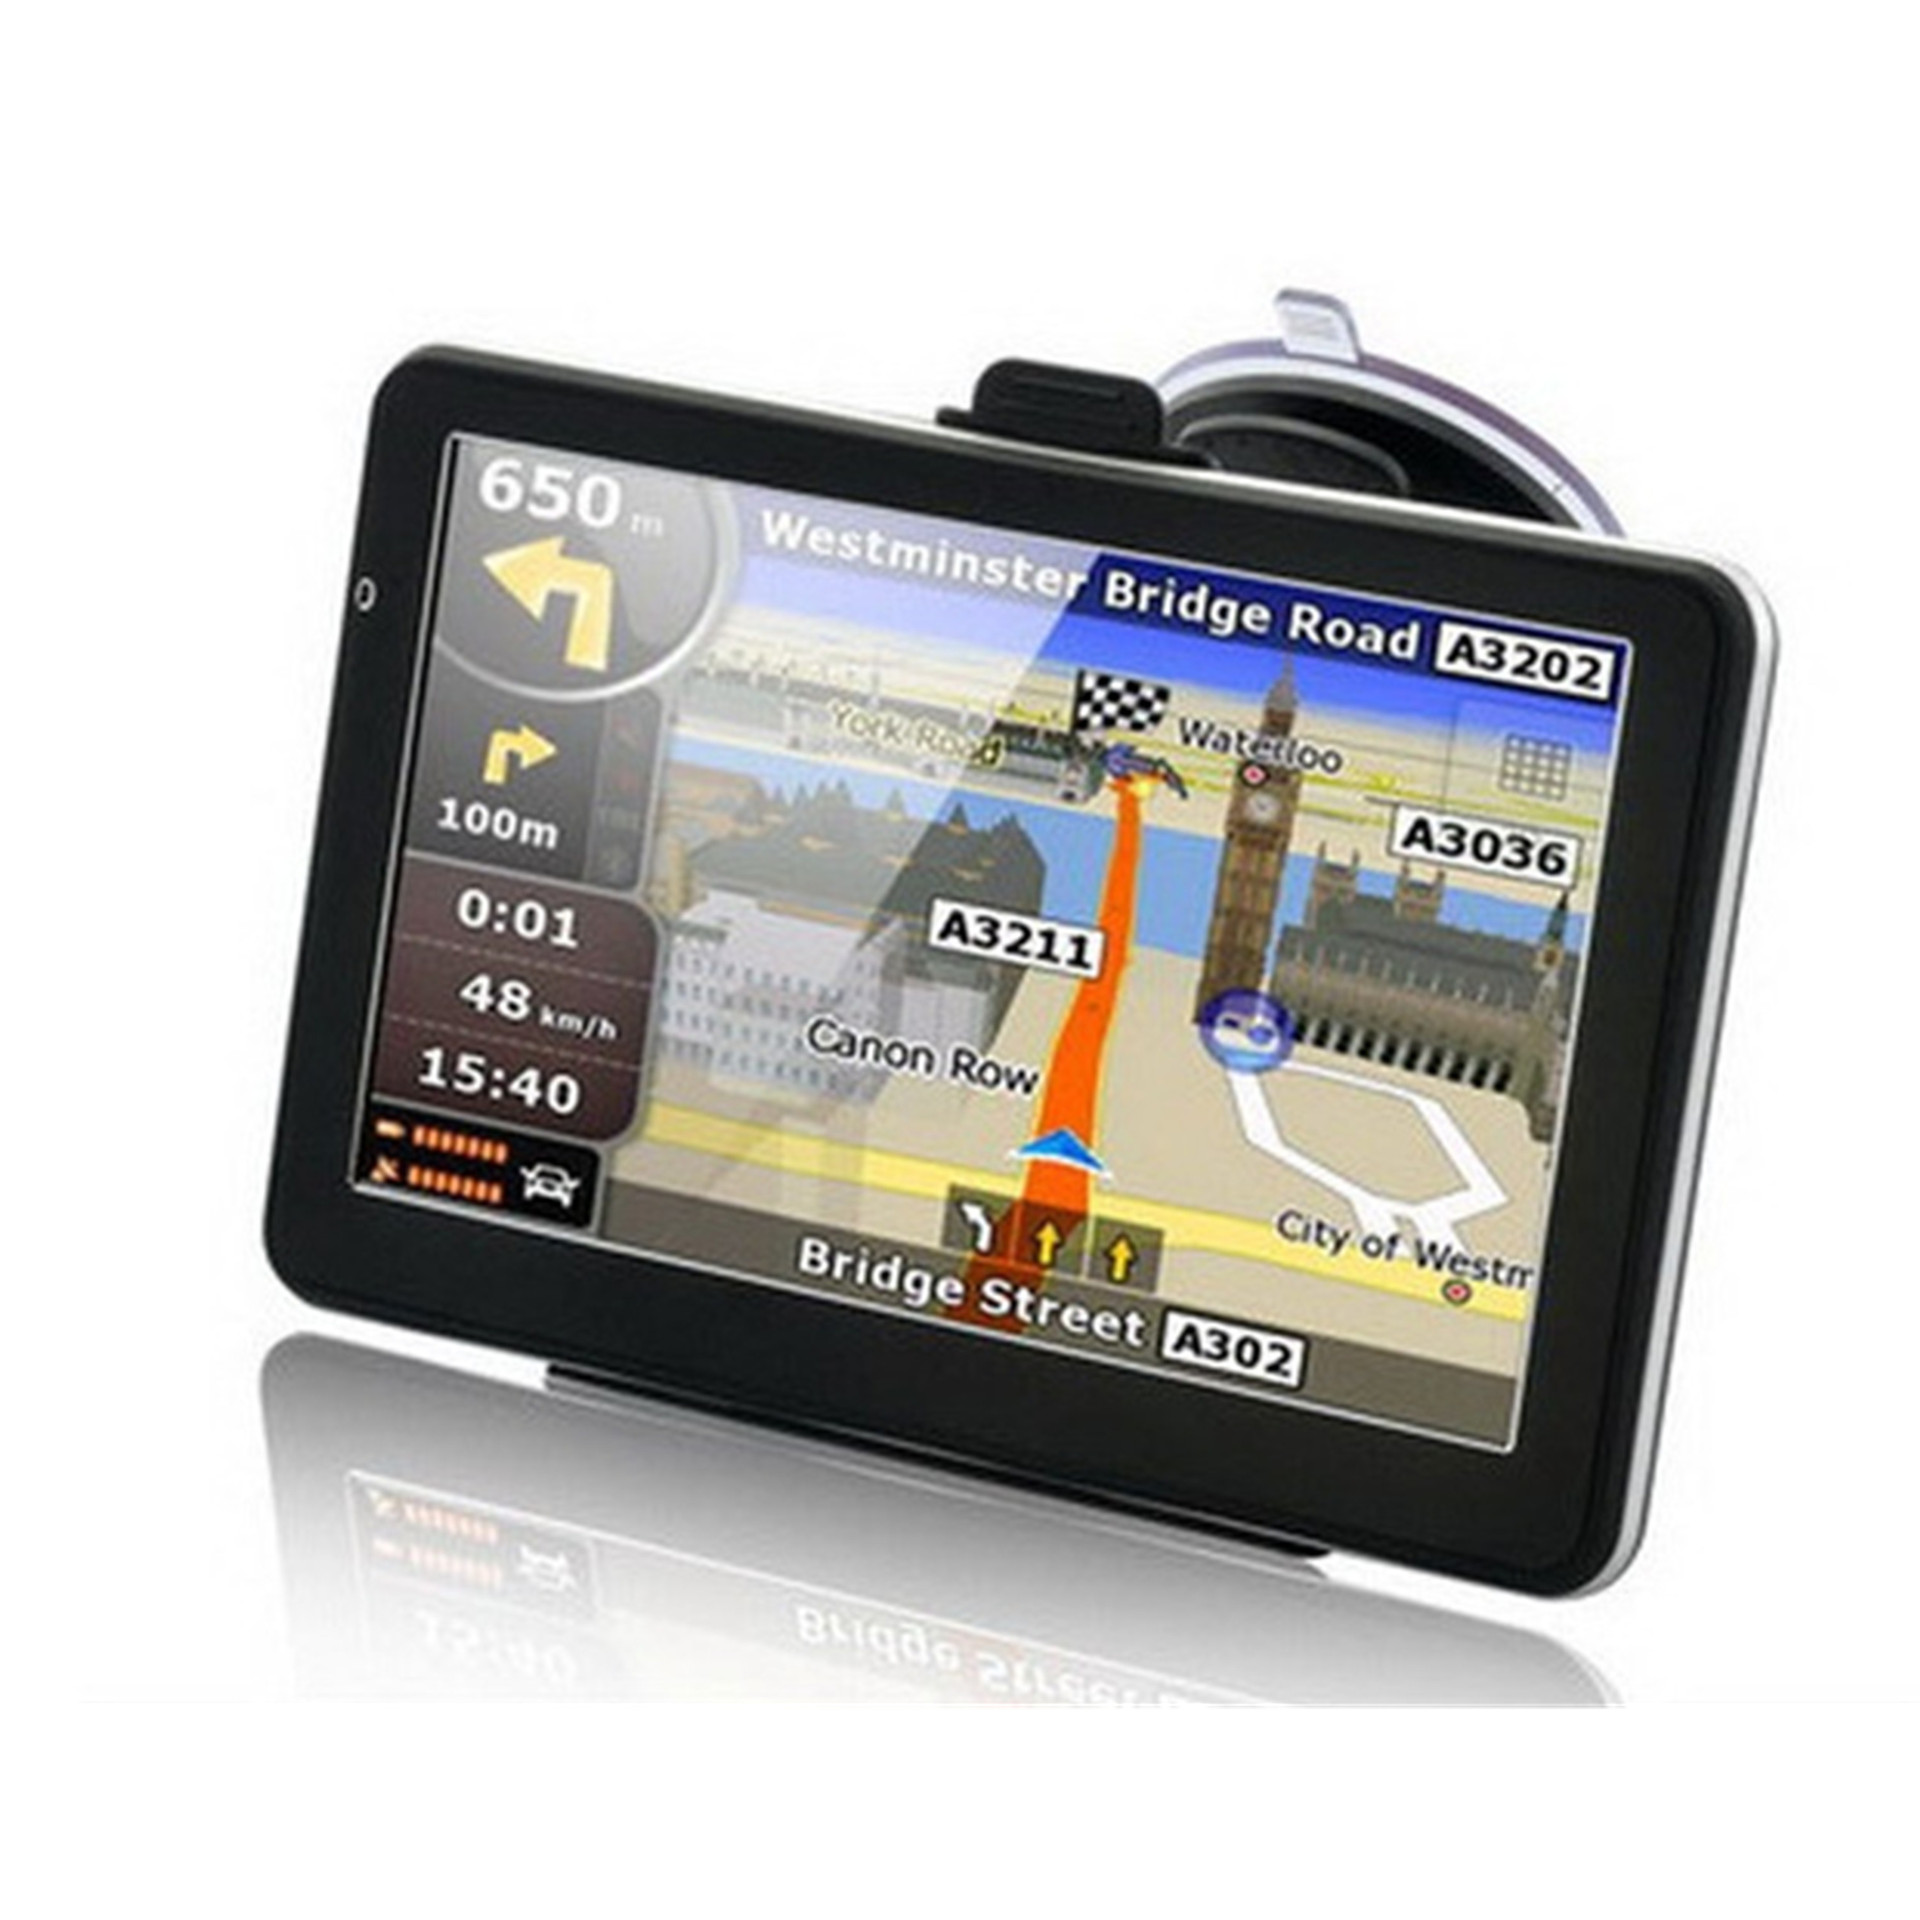 купить 7 inch HD Car GPS Navigation FM Bluetooth Map Free Upgrade Europe Sat nav Truck gps navigators automobile по цене 4444.84 рублей